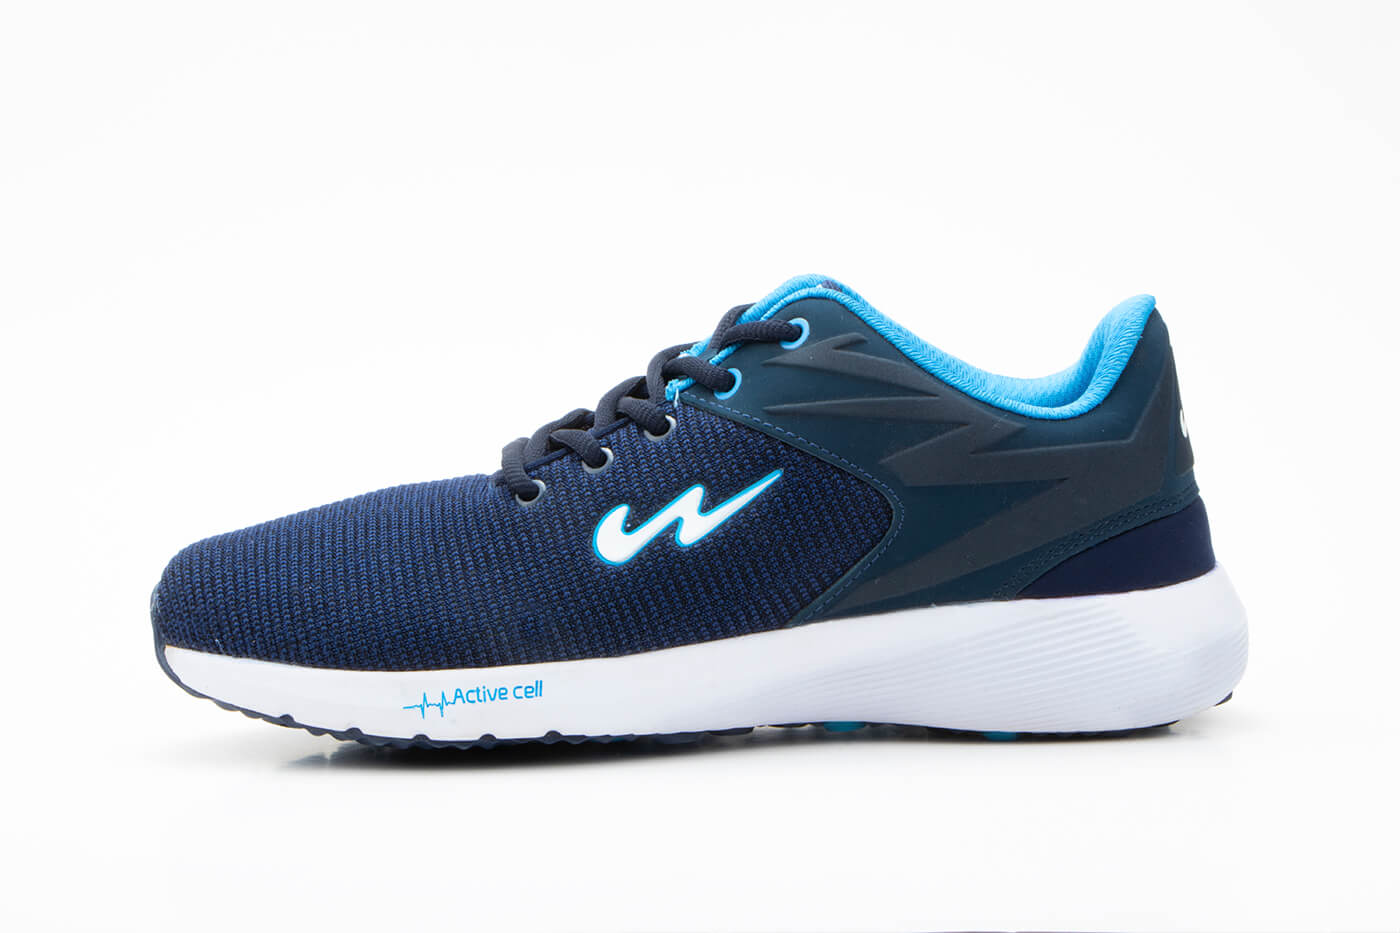 CAMPUS MEN'S SPORTS SHOES in BLUE/SKY